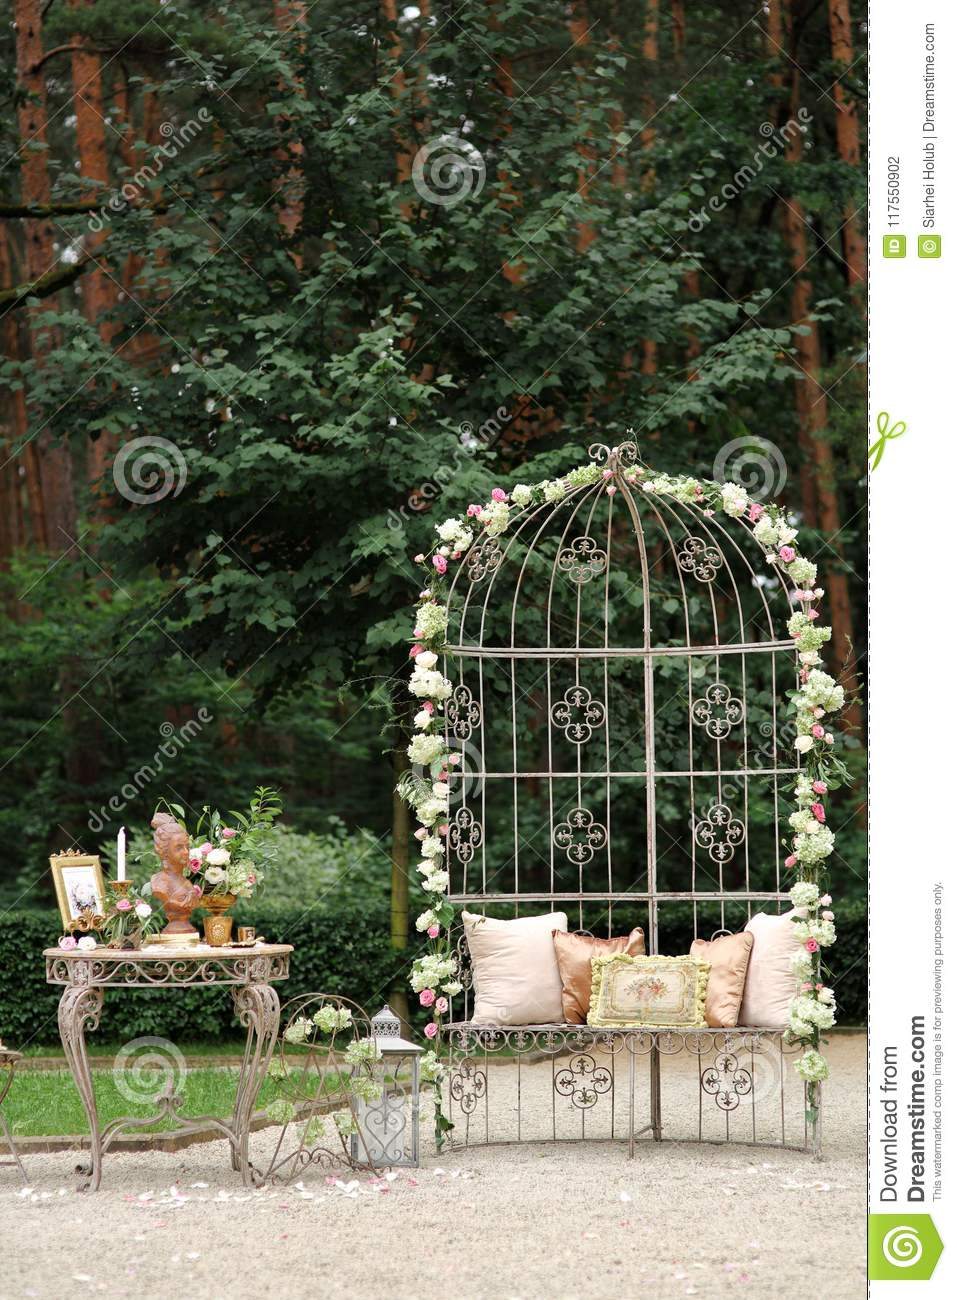 Decorations For The Wedding Ceremony Flowers Weddig Arch Stock Photo